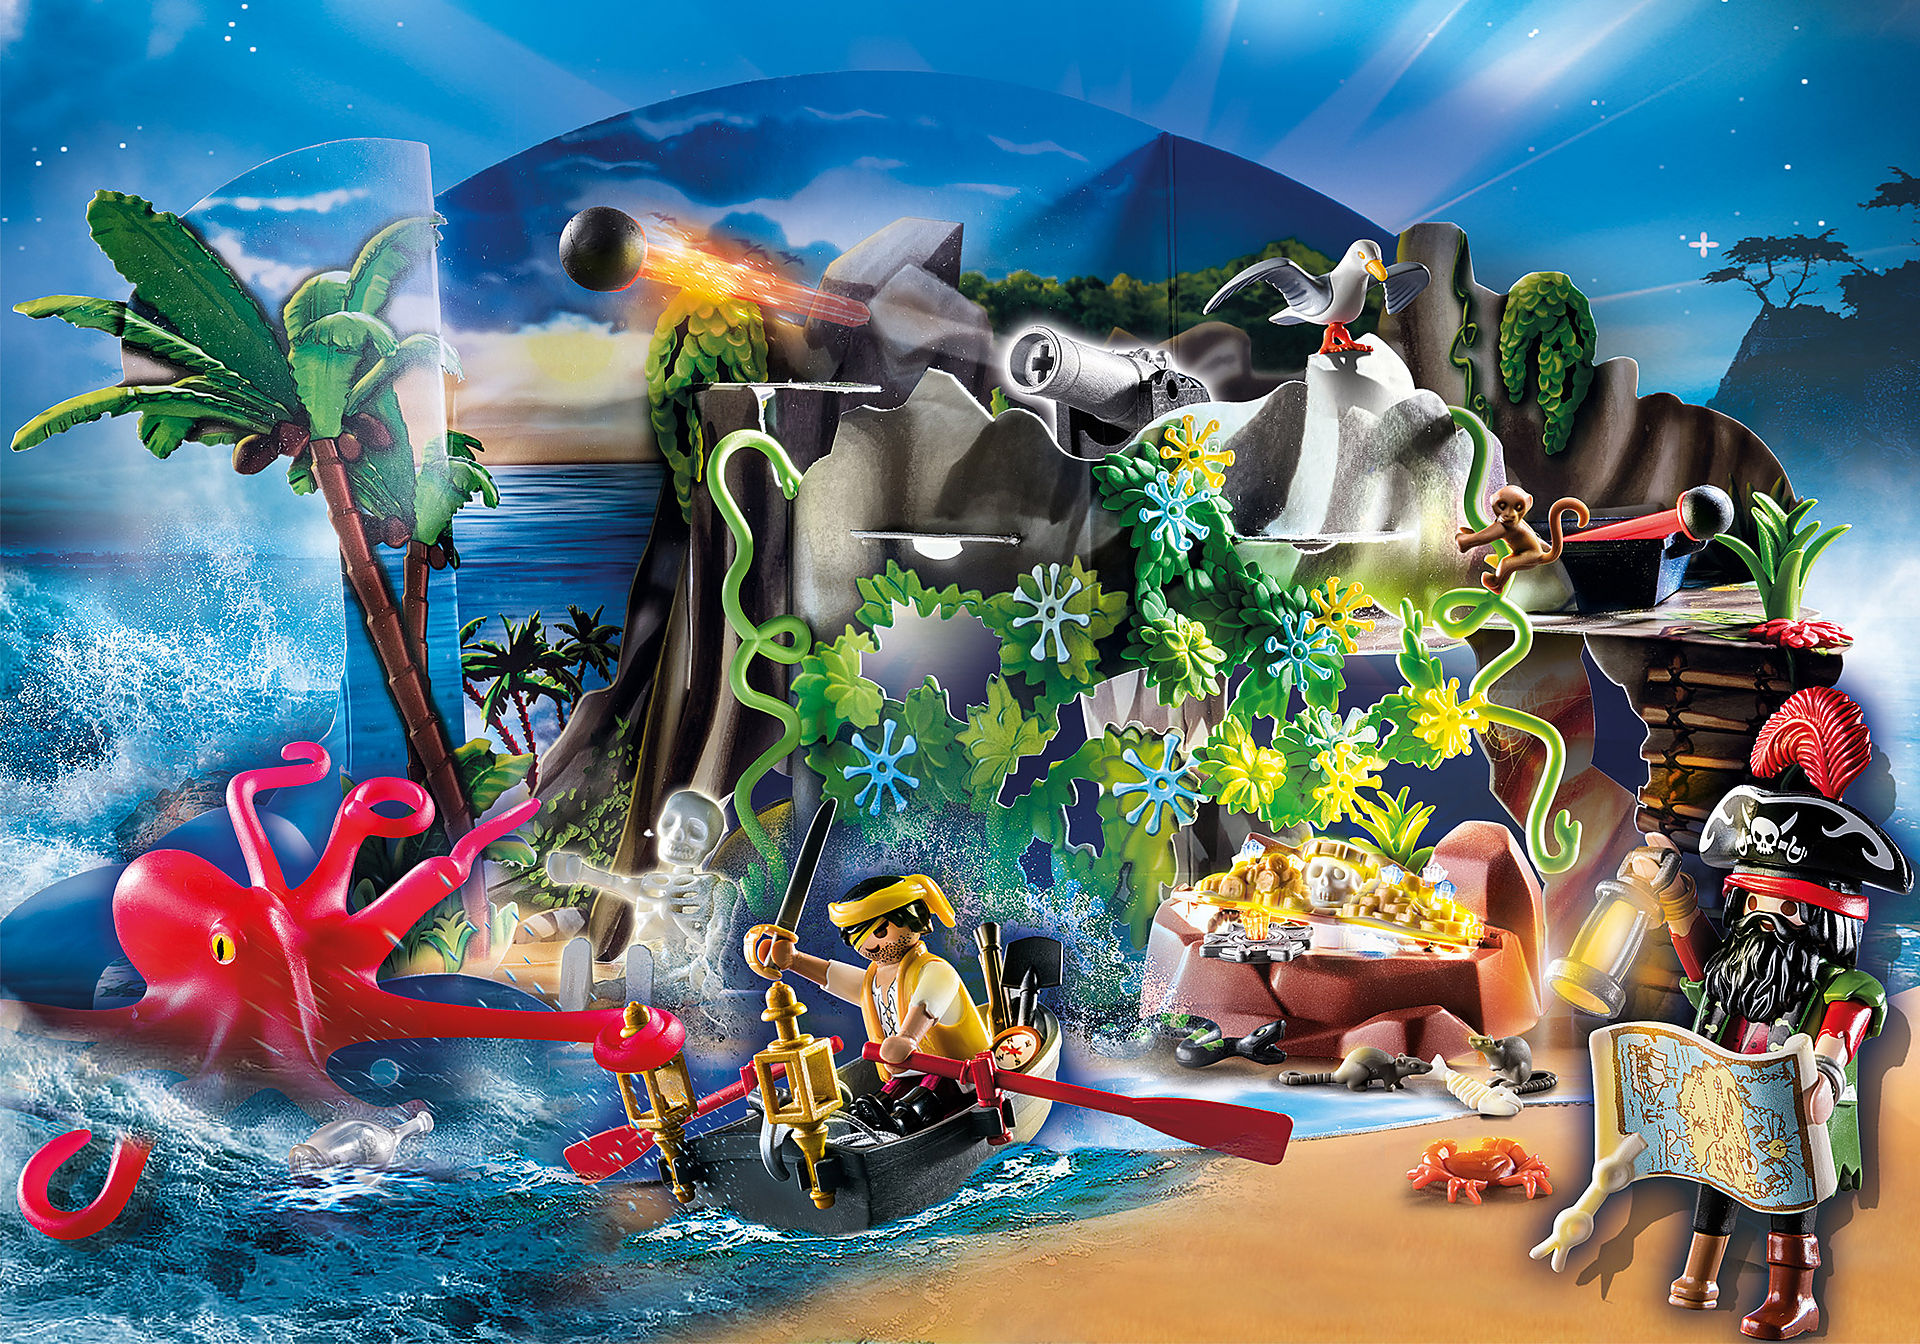 70322 Pirate Cove Treasure Hunt for the advent zoom image5